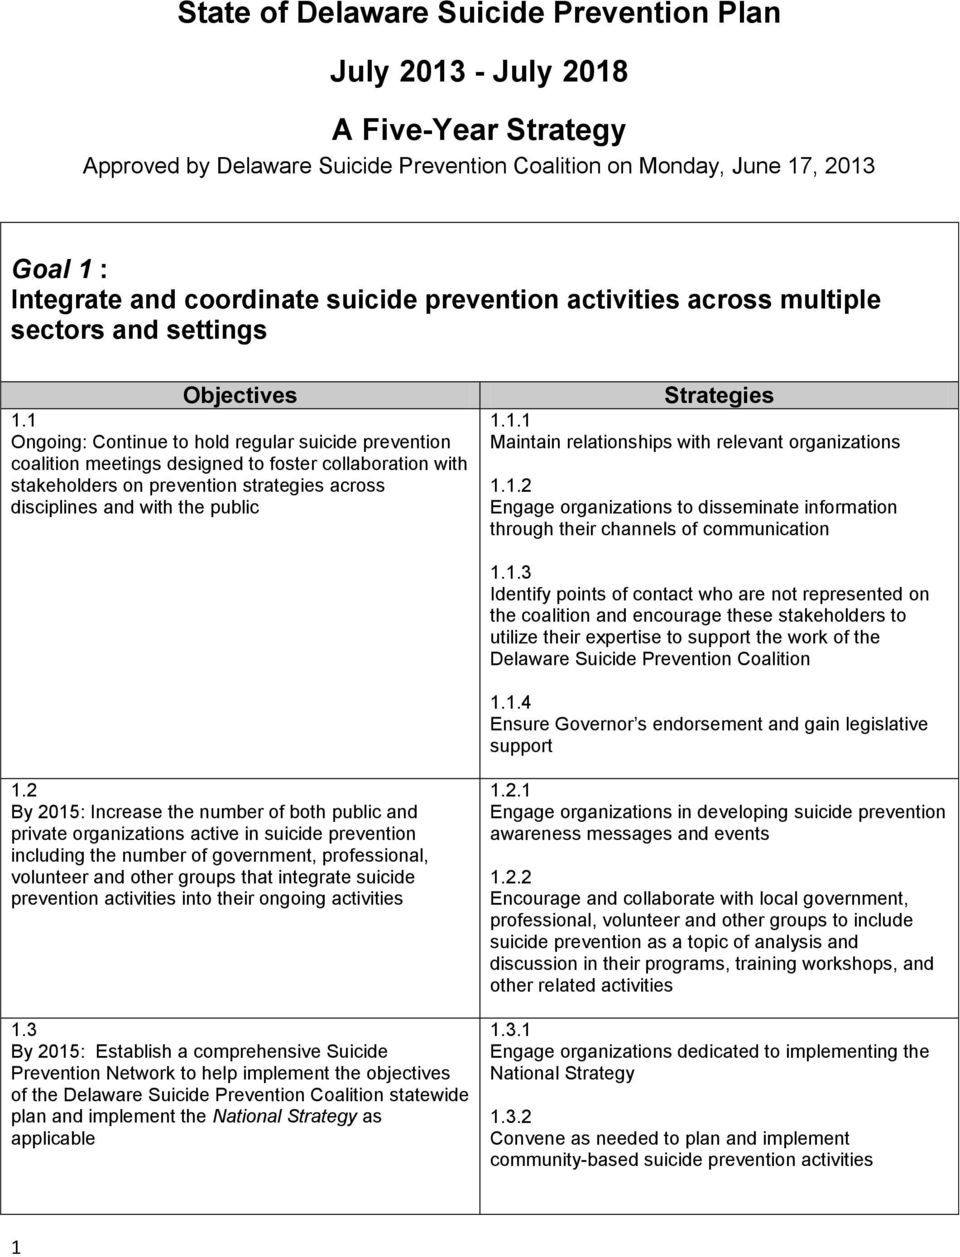 1 Ongoing: Continue to hold regular suicide prevention coalition meetings designed to foster collaboration with stakeholders on prevention strategies across disciplines and with the public 1.1.1 Maintain relationships with relevant organizations 1.